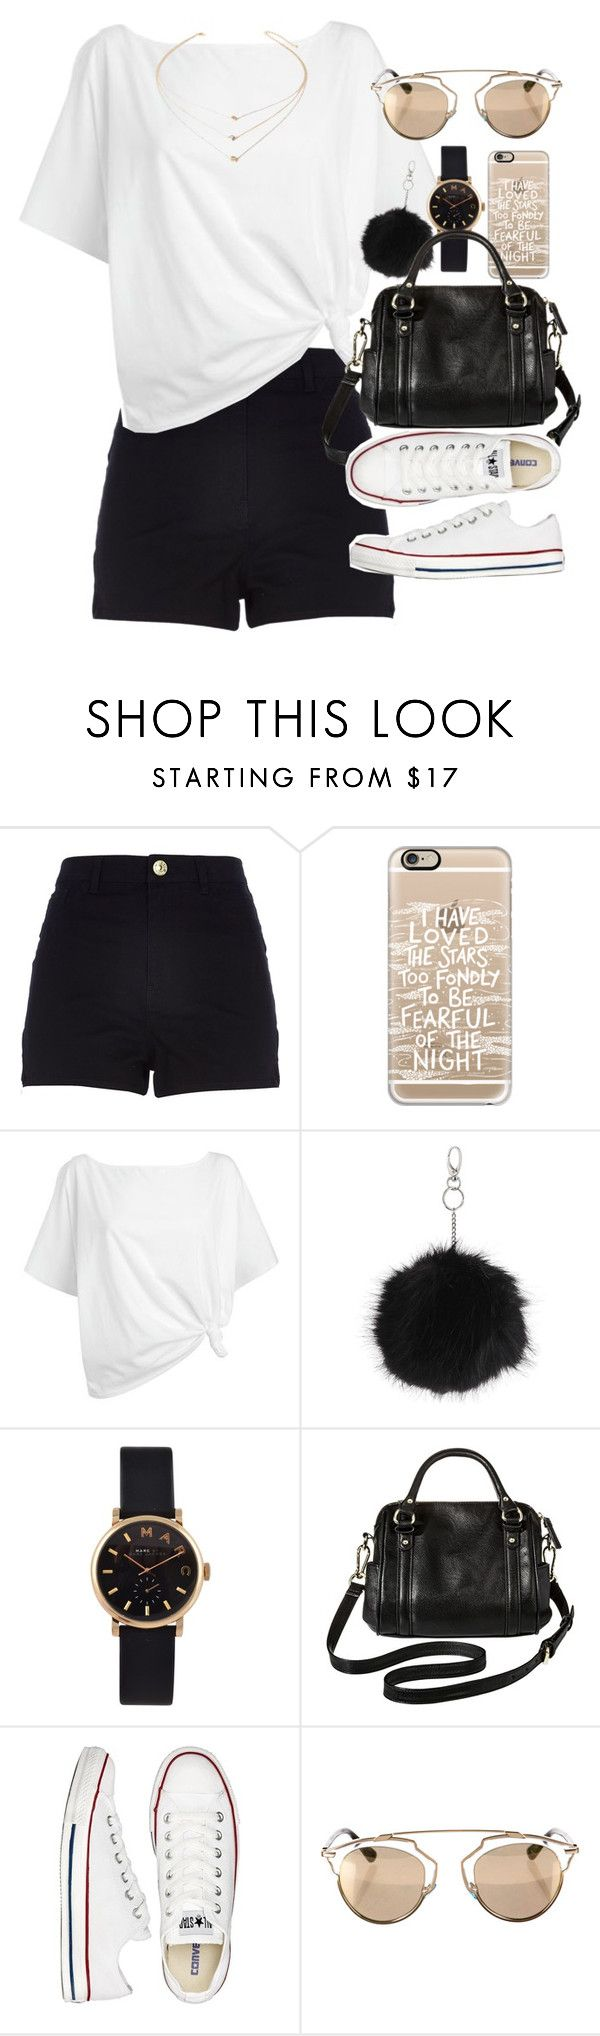 """Outfit for summer with a white top and black shorts"" by ferned on Polyvore featuring River Island, Casetify, Red Herring, Topshop, Marc by Marc Jacobs, Merona, Converse, Christian Dior, Forever 21 and women's clothing"